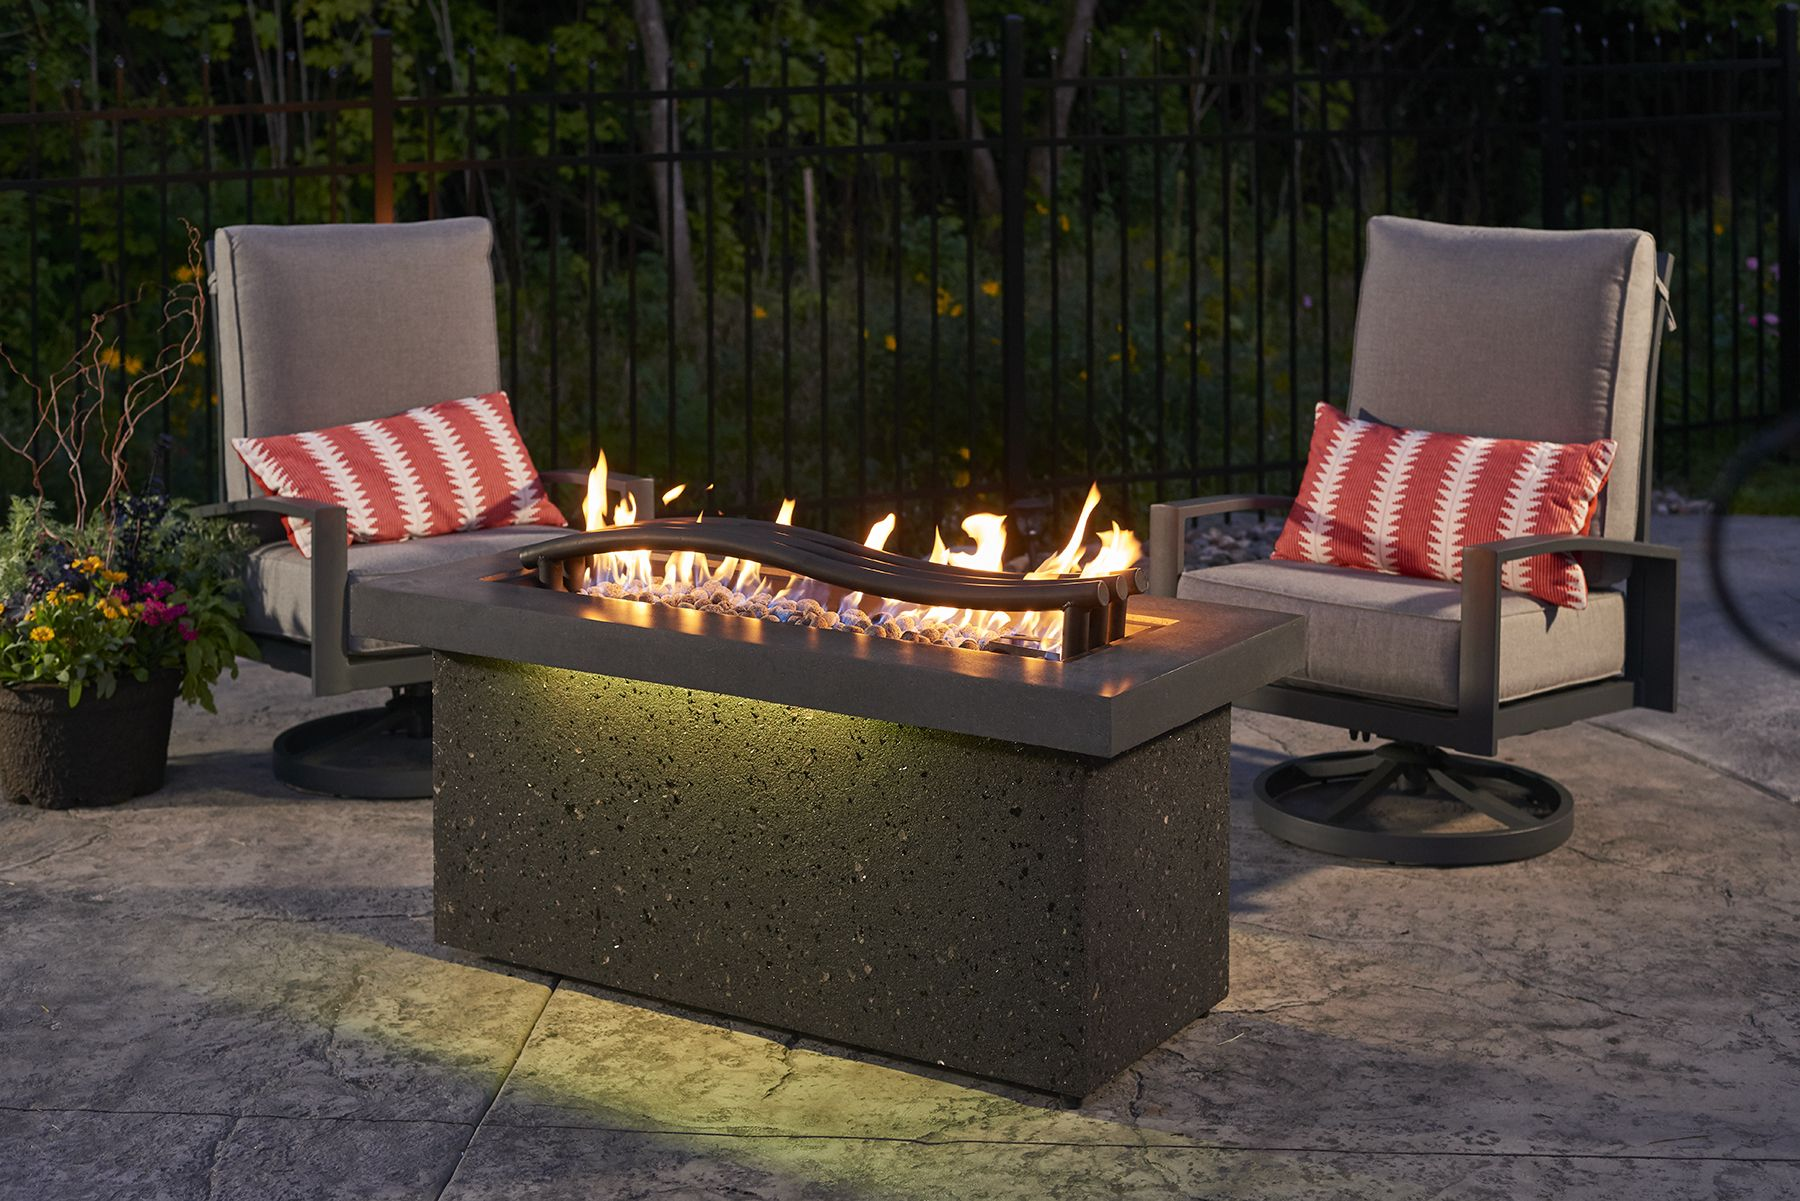 Multi Color Led Light With This Awesome Modern Fire Pit Table Available For Purchase At Home Fire Stove And G Fire Pit Backyard Backyard Fire Fire Pit Designs